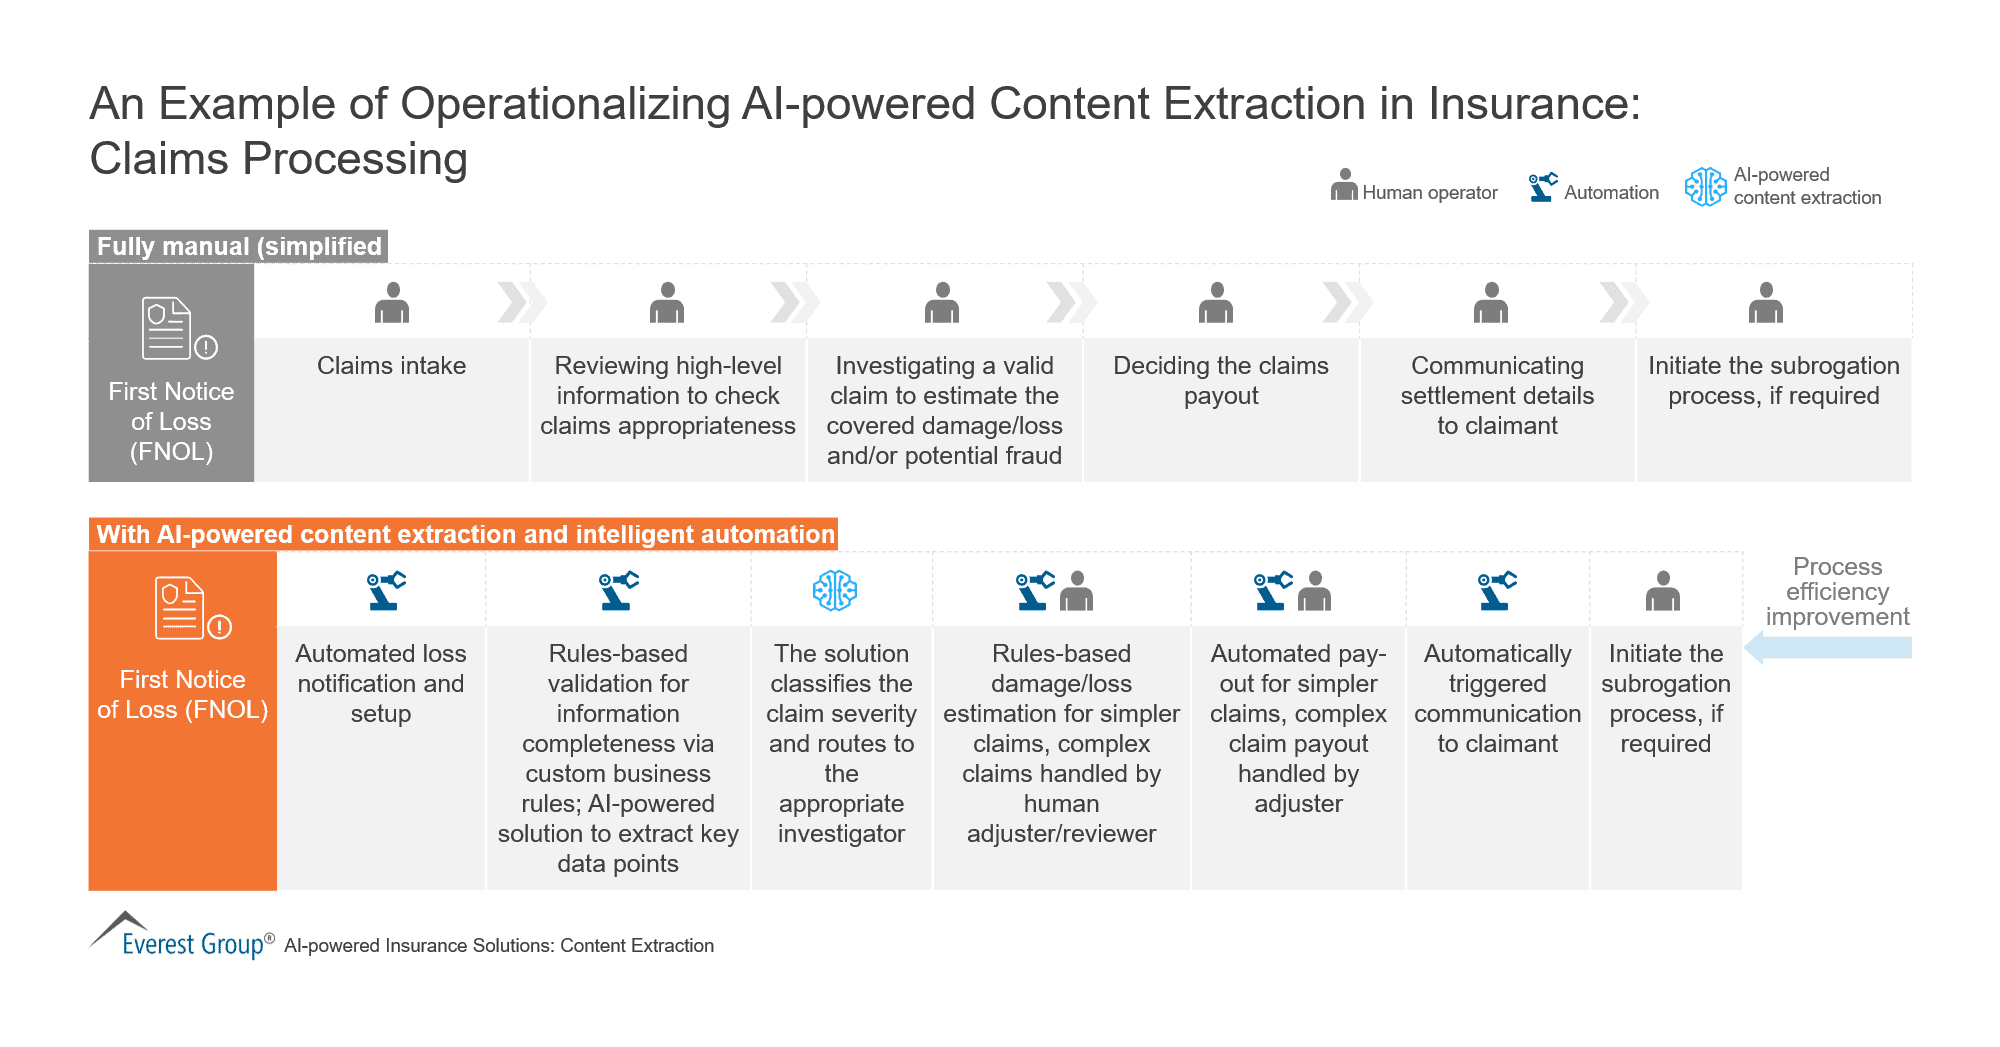 An Example of Operationalizing AI-powered Content Extraction in Insurance - Claims Processing